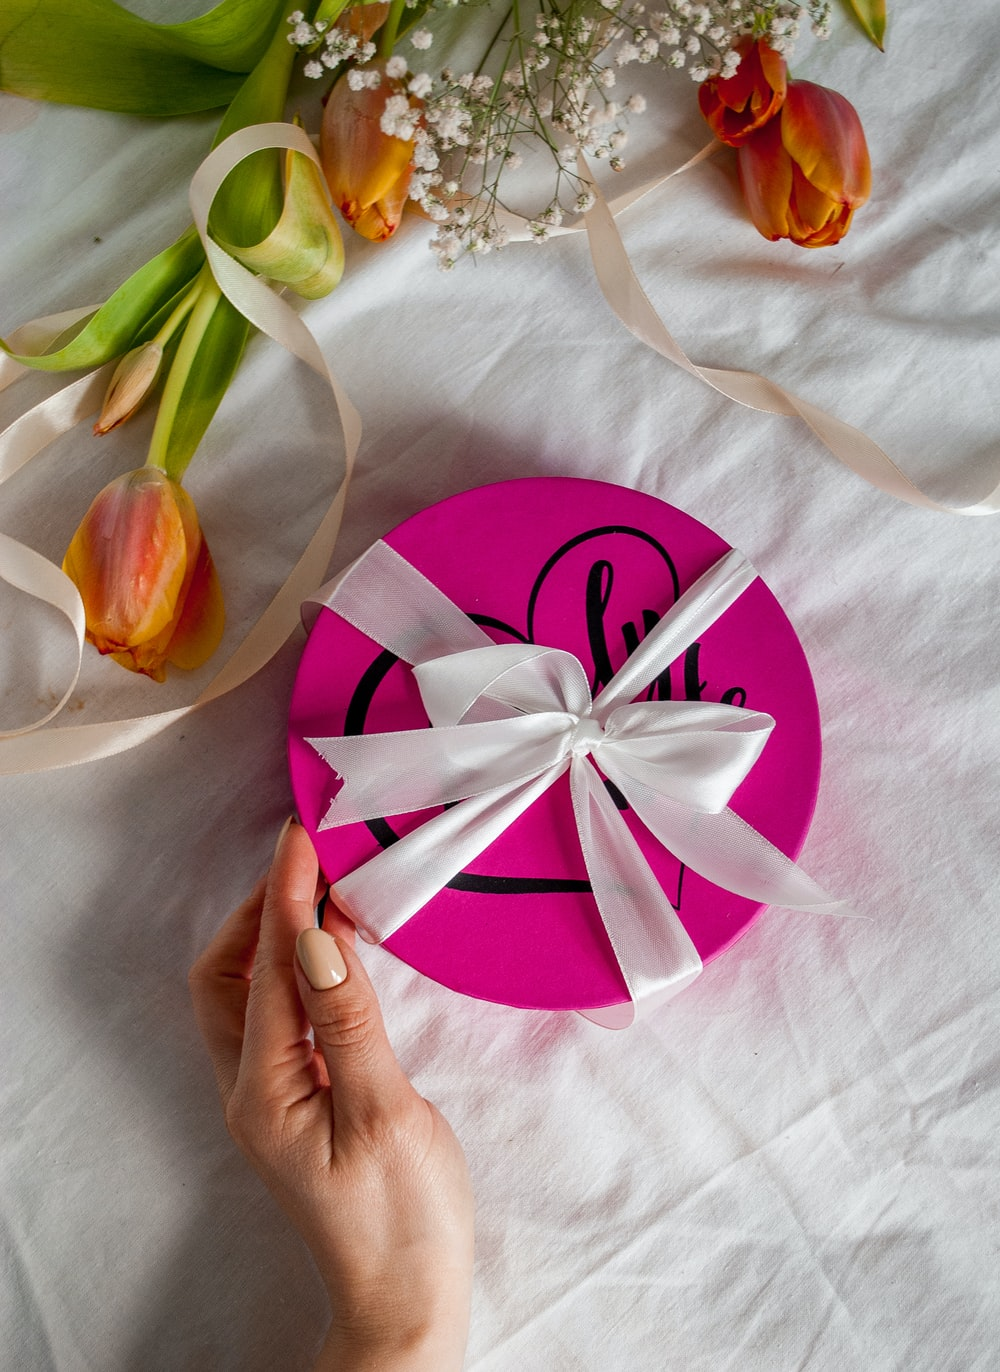 person holding pink and white heart paper